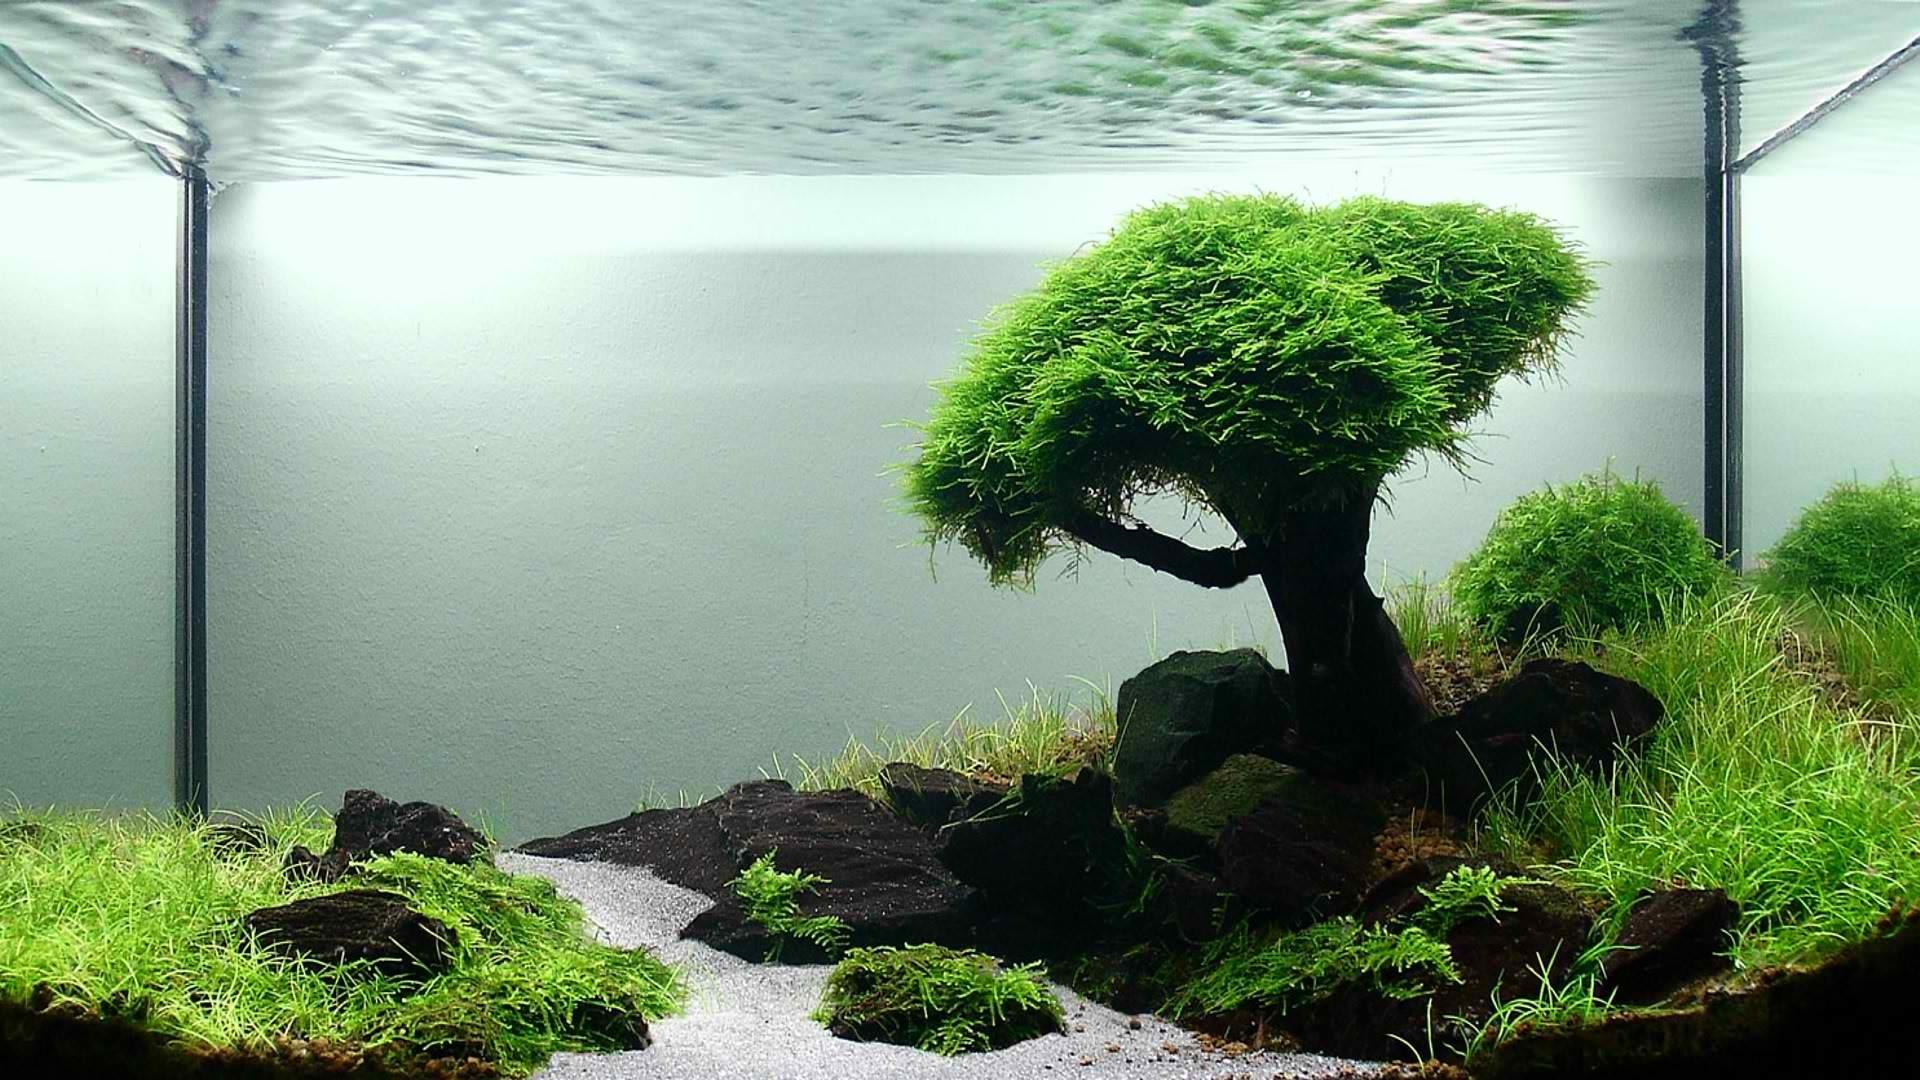 1920x1080 Aquarium Tree Stones & Grass desktop PC and Mac wallpaper